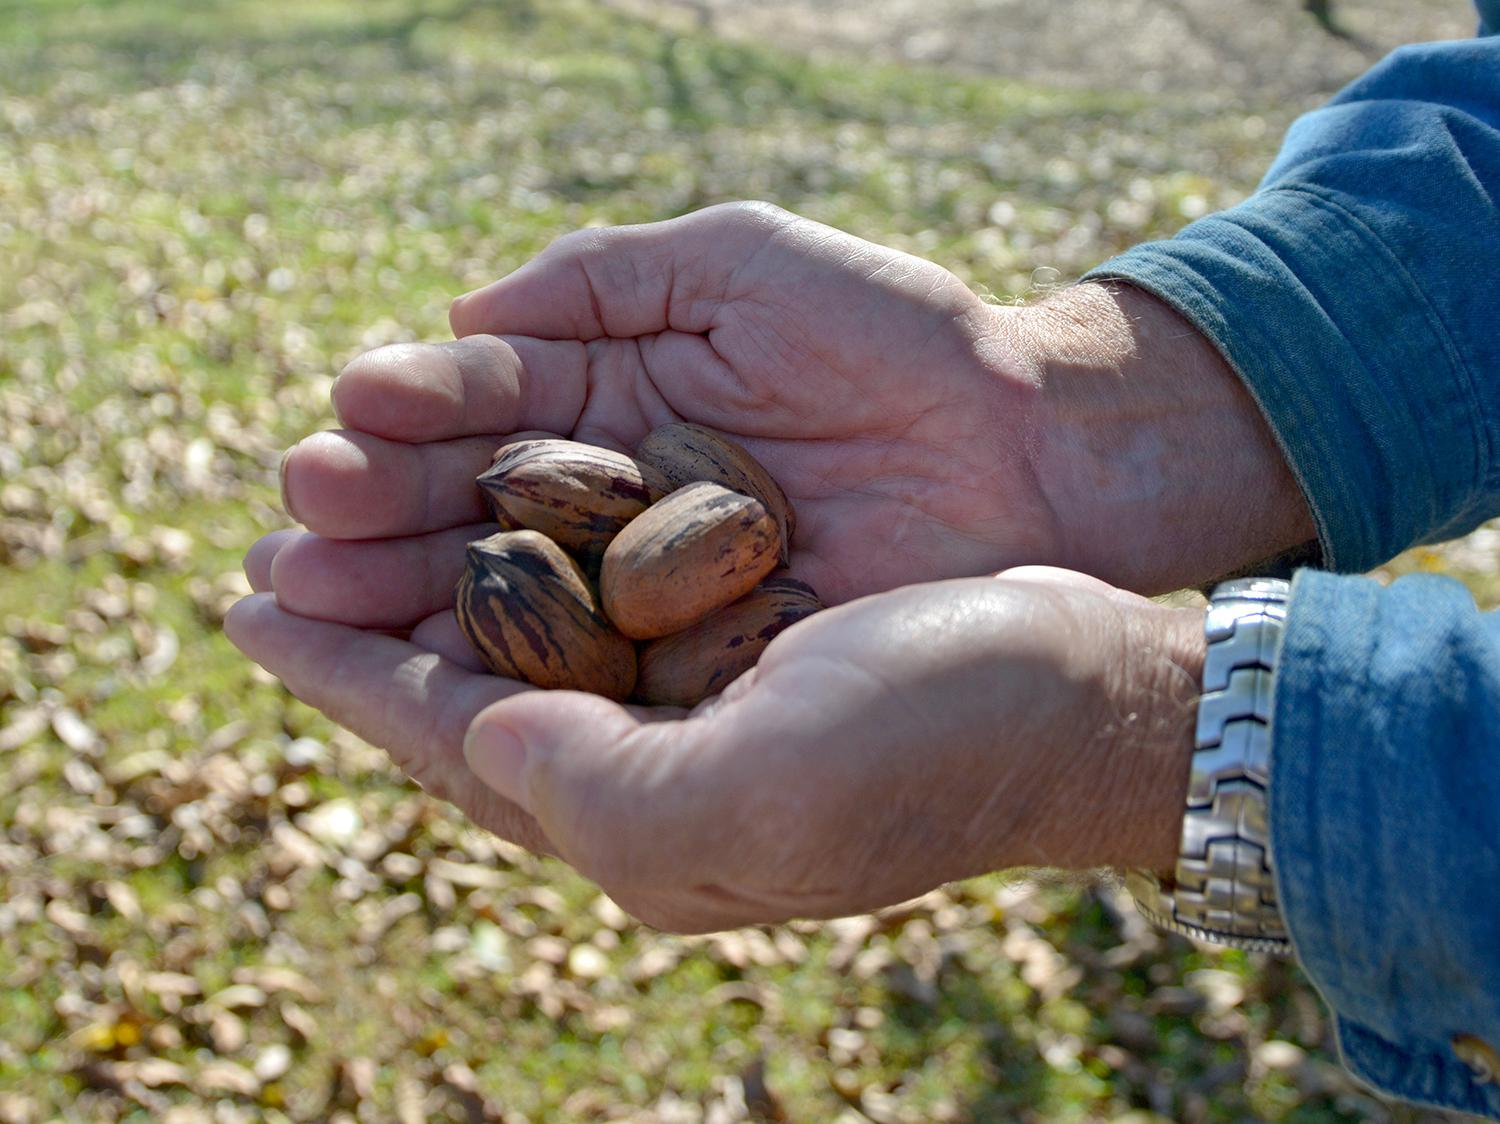 Mississippi trees are producing fewer pecans than normal this year, but consumers will be pleased with the size and taste of most nuts, such as these from an orchard in Oktibbeha County. This photo was taken on Oct. 31, 2014. (Photo by MSU Ag Communications/Linda Breazeale)